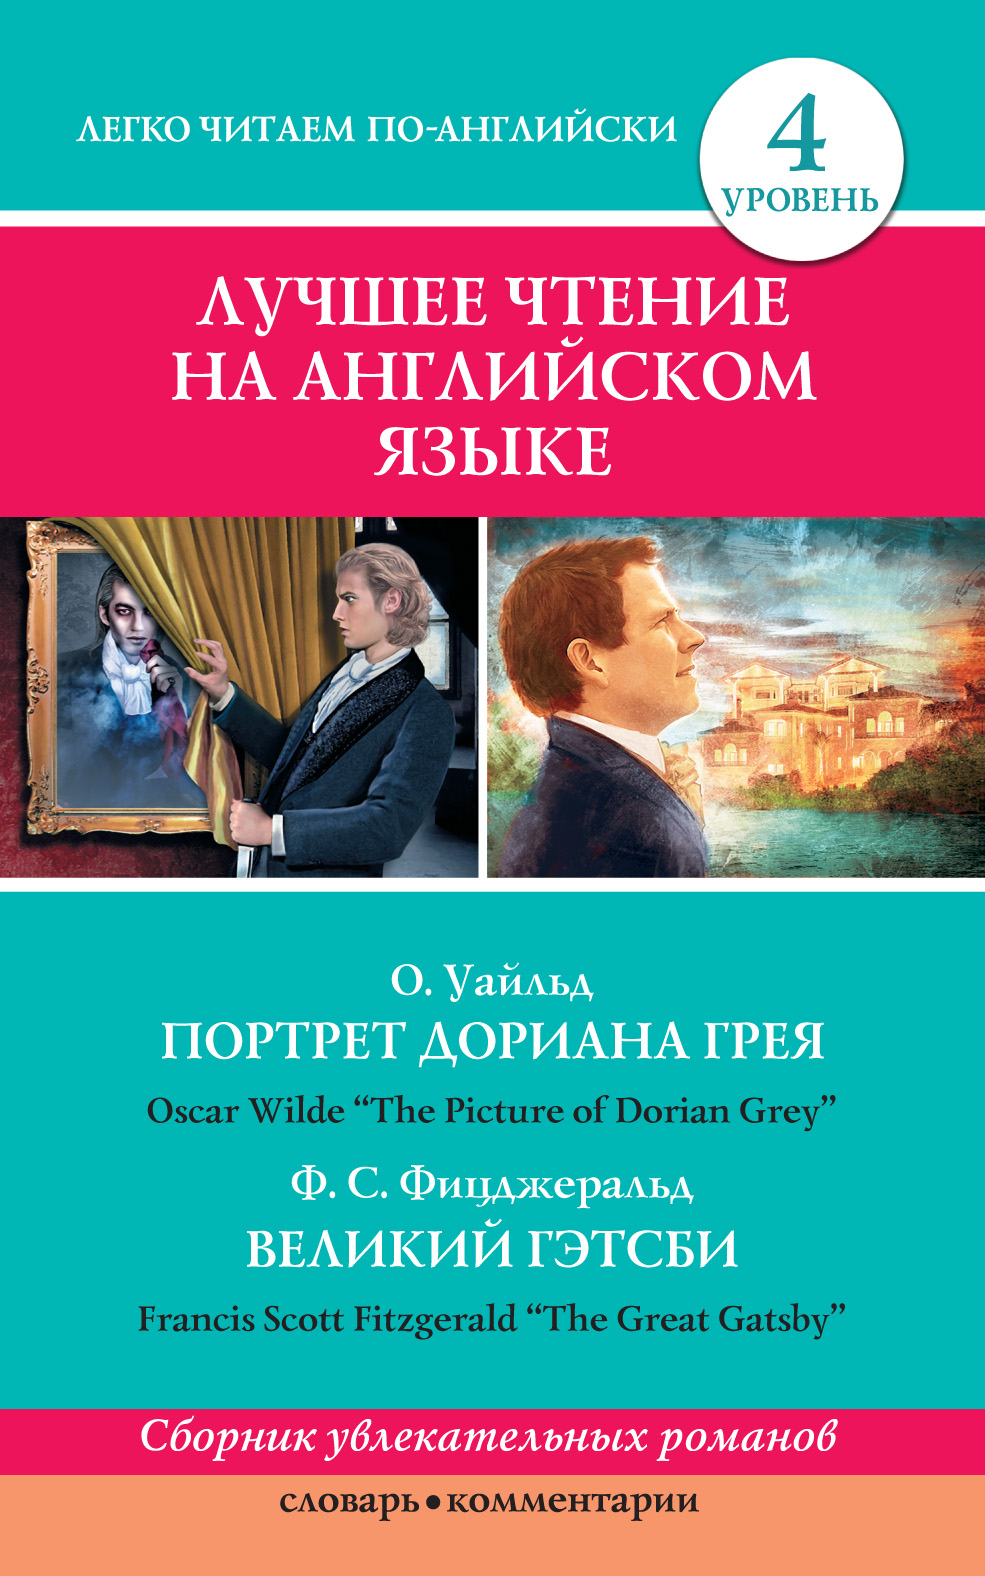 Оскар Уайльд Портрет Дориана Грея / The Picture of Dorian Grey. Великий Гэтсби / The Great Gatsby велимир хлебников велимир хлебников собрание сочинений в 6 томах том 3 поэмы 1905 1922